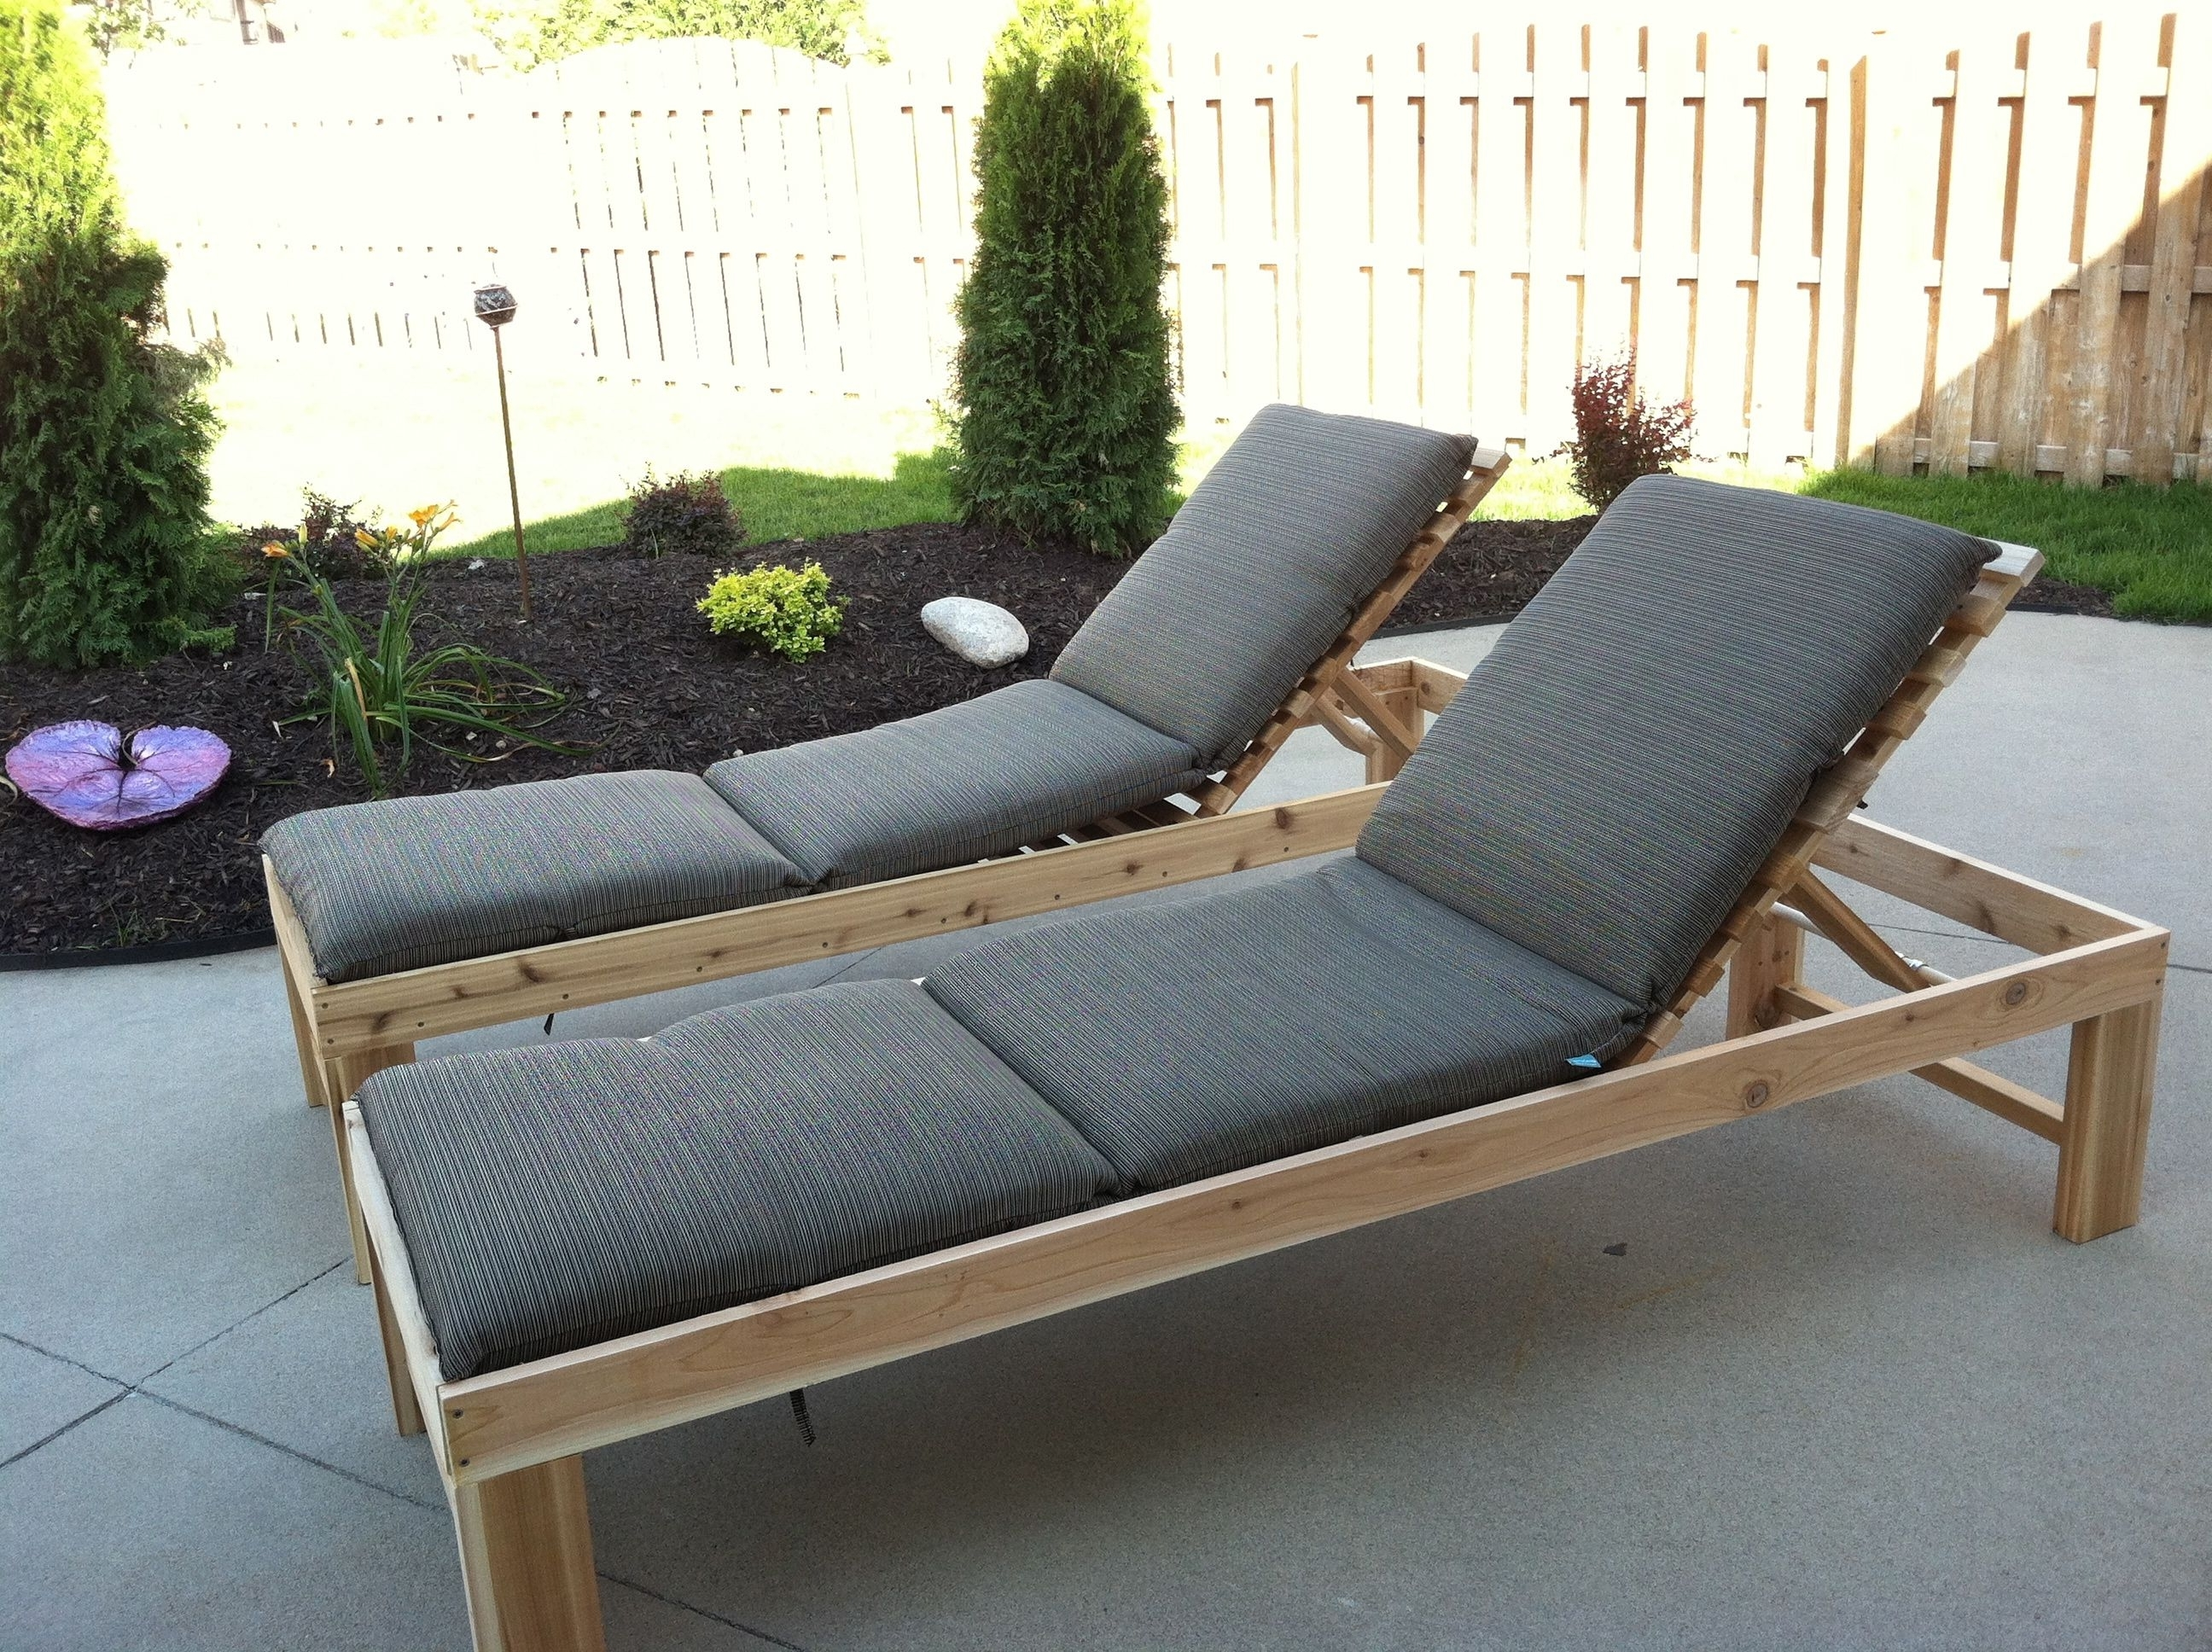 Outdoor Chaise Lounge – Diy Projects For Most Up To Date Wooden Chaise Lounges (View 12 of 15)